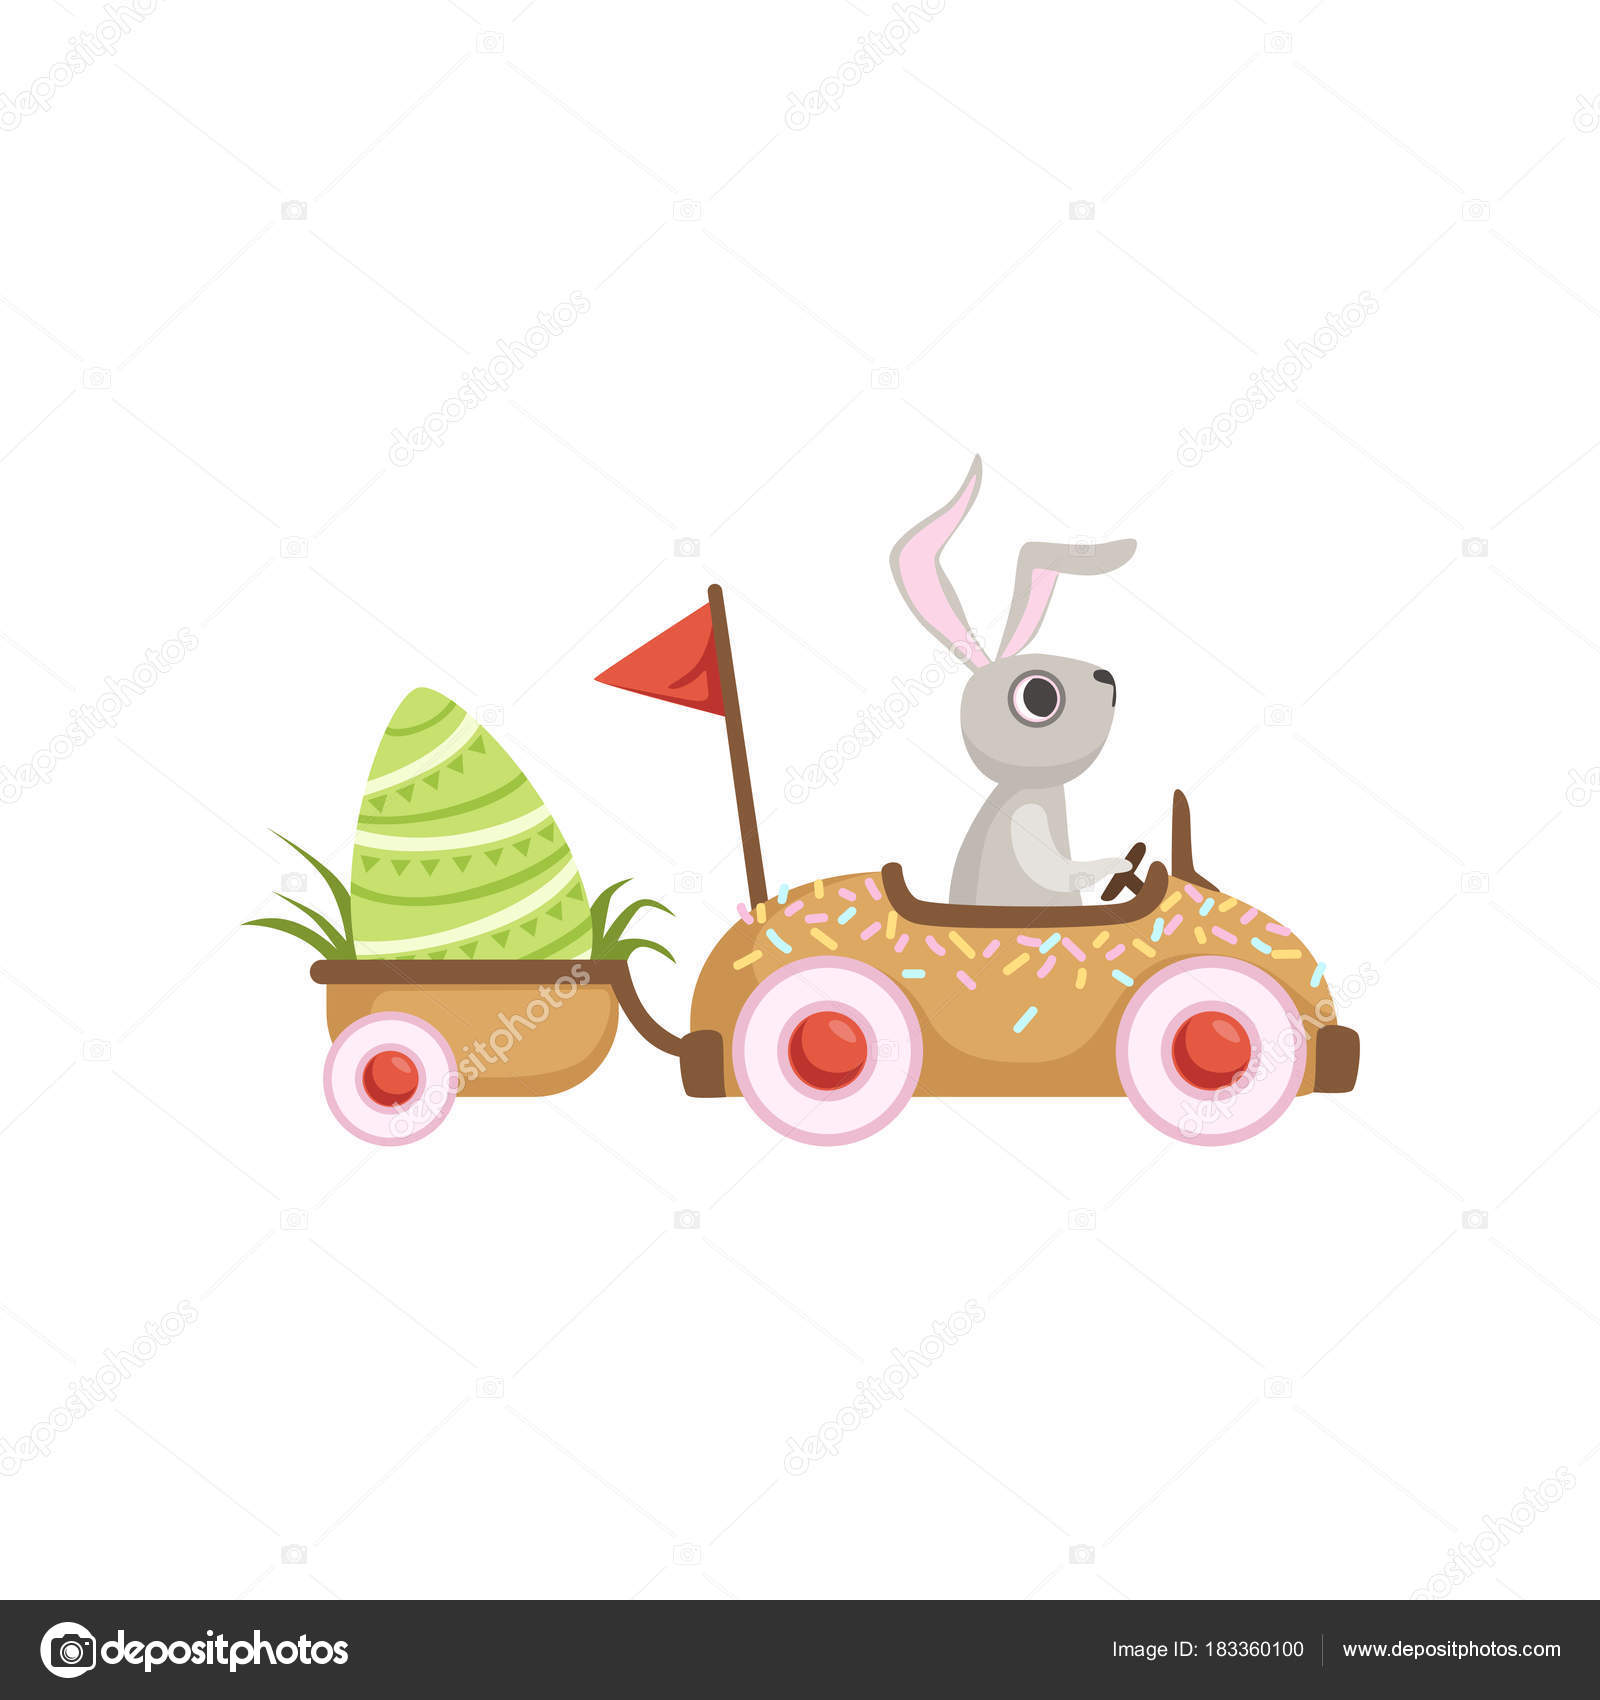 Easter Bunny Reese S Egg Cars: Cute Little Bunny Driving Car With Green Egg, Funny Rabbit